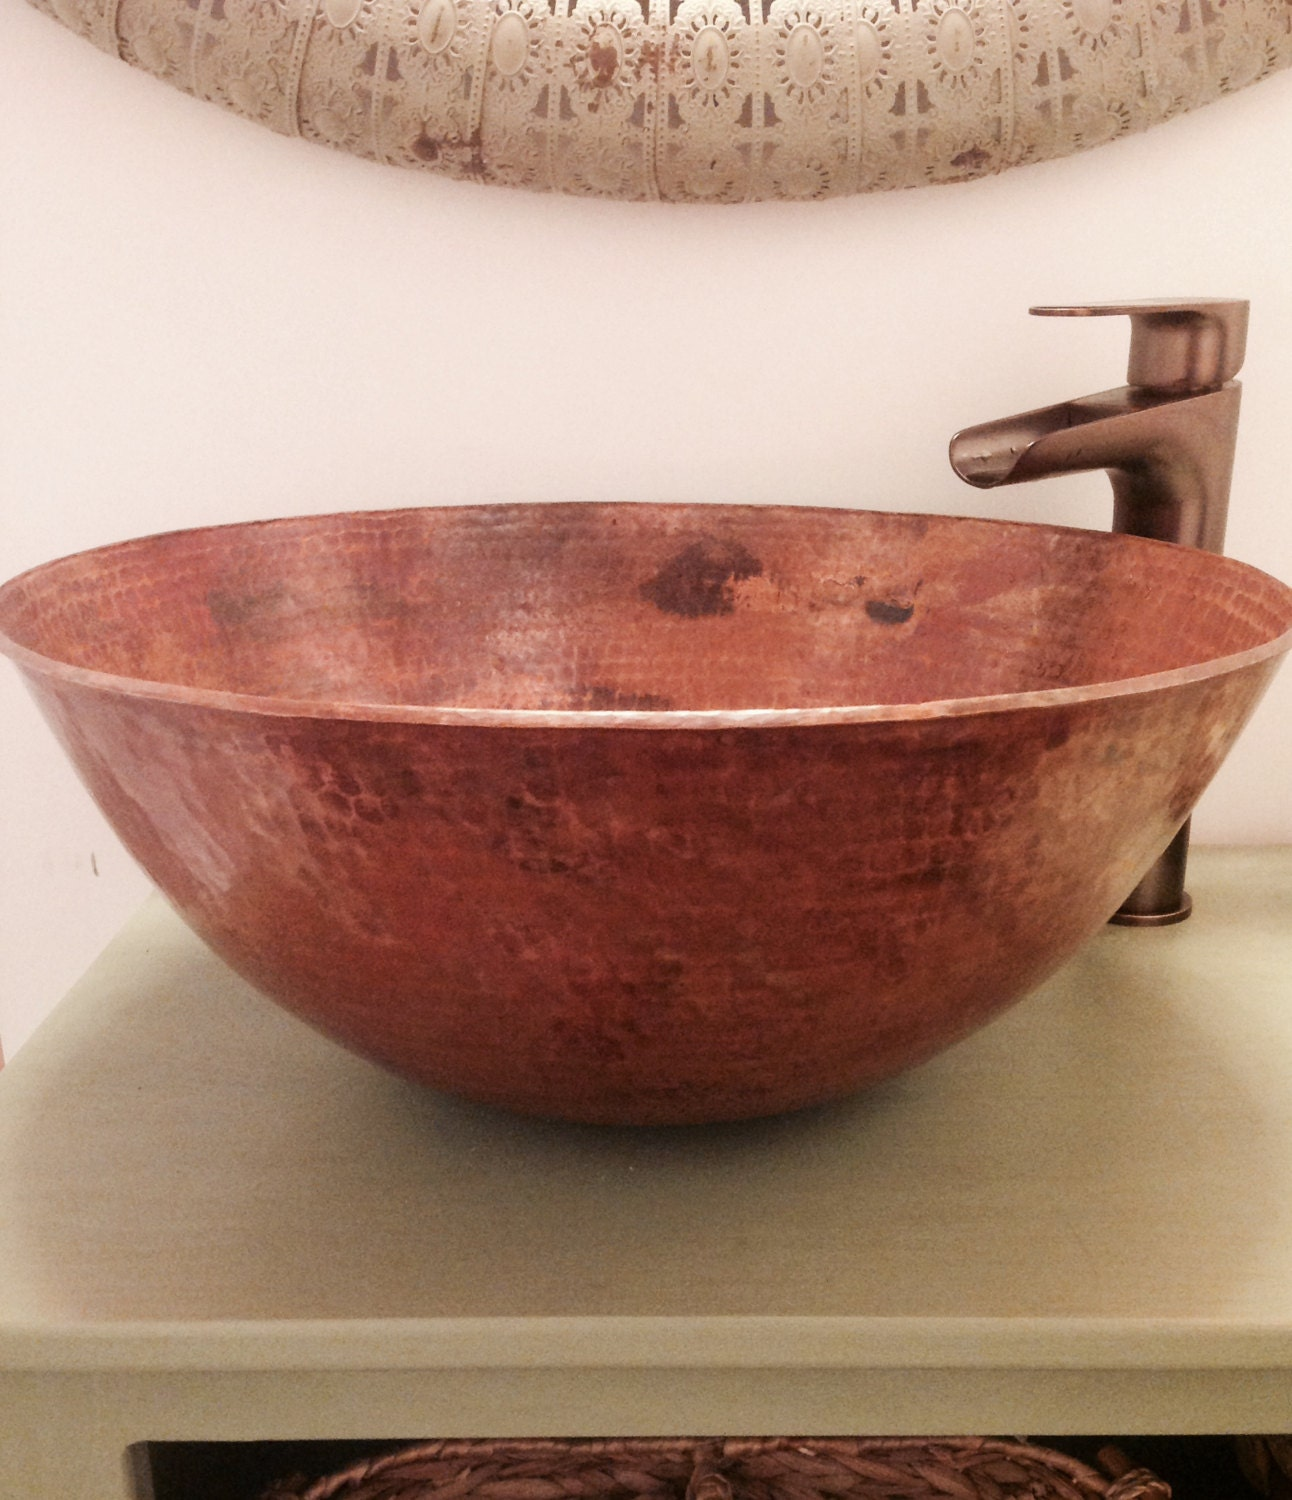 Rustic Sink : Beautifully Rustic Round Vessel Bathroom Sink Shown in